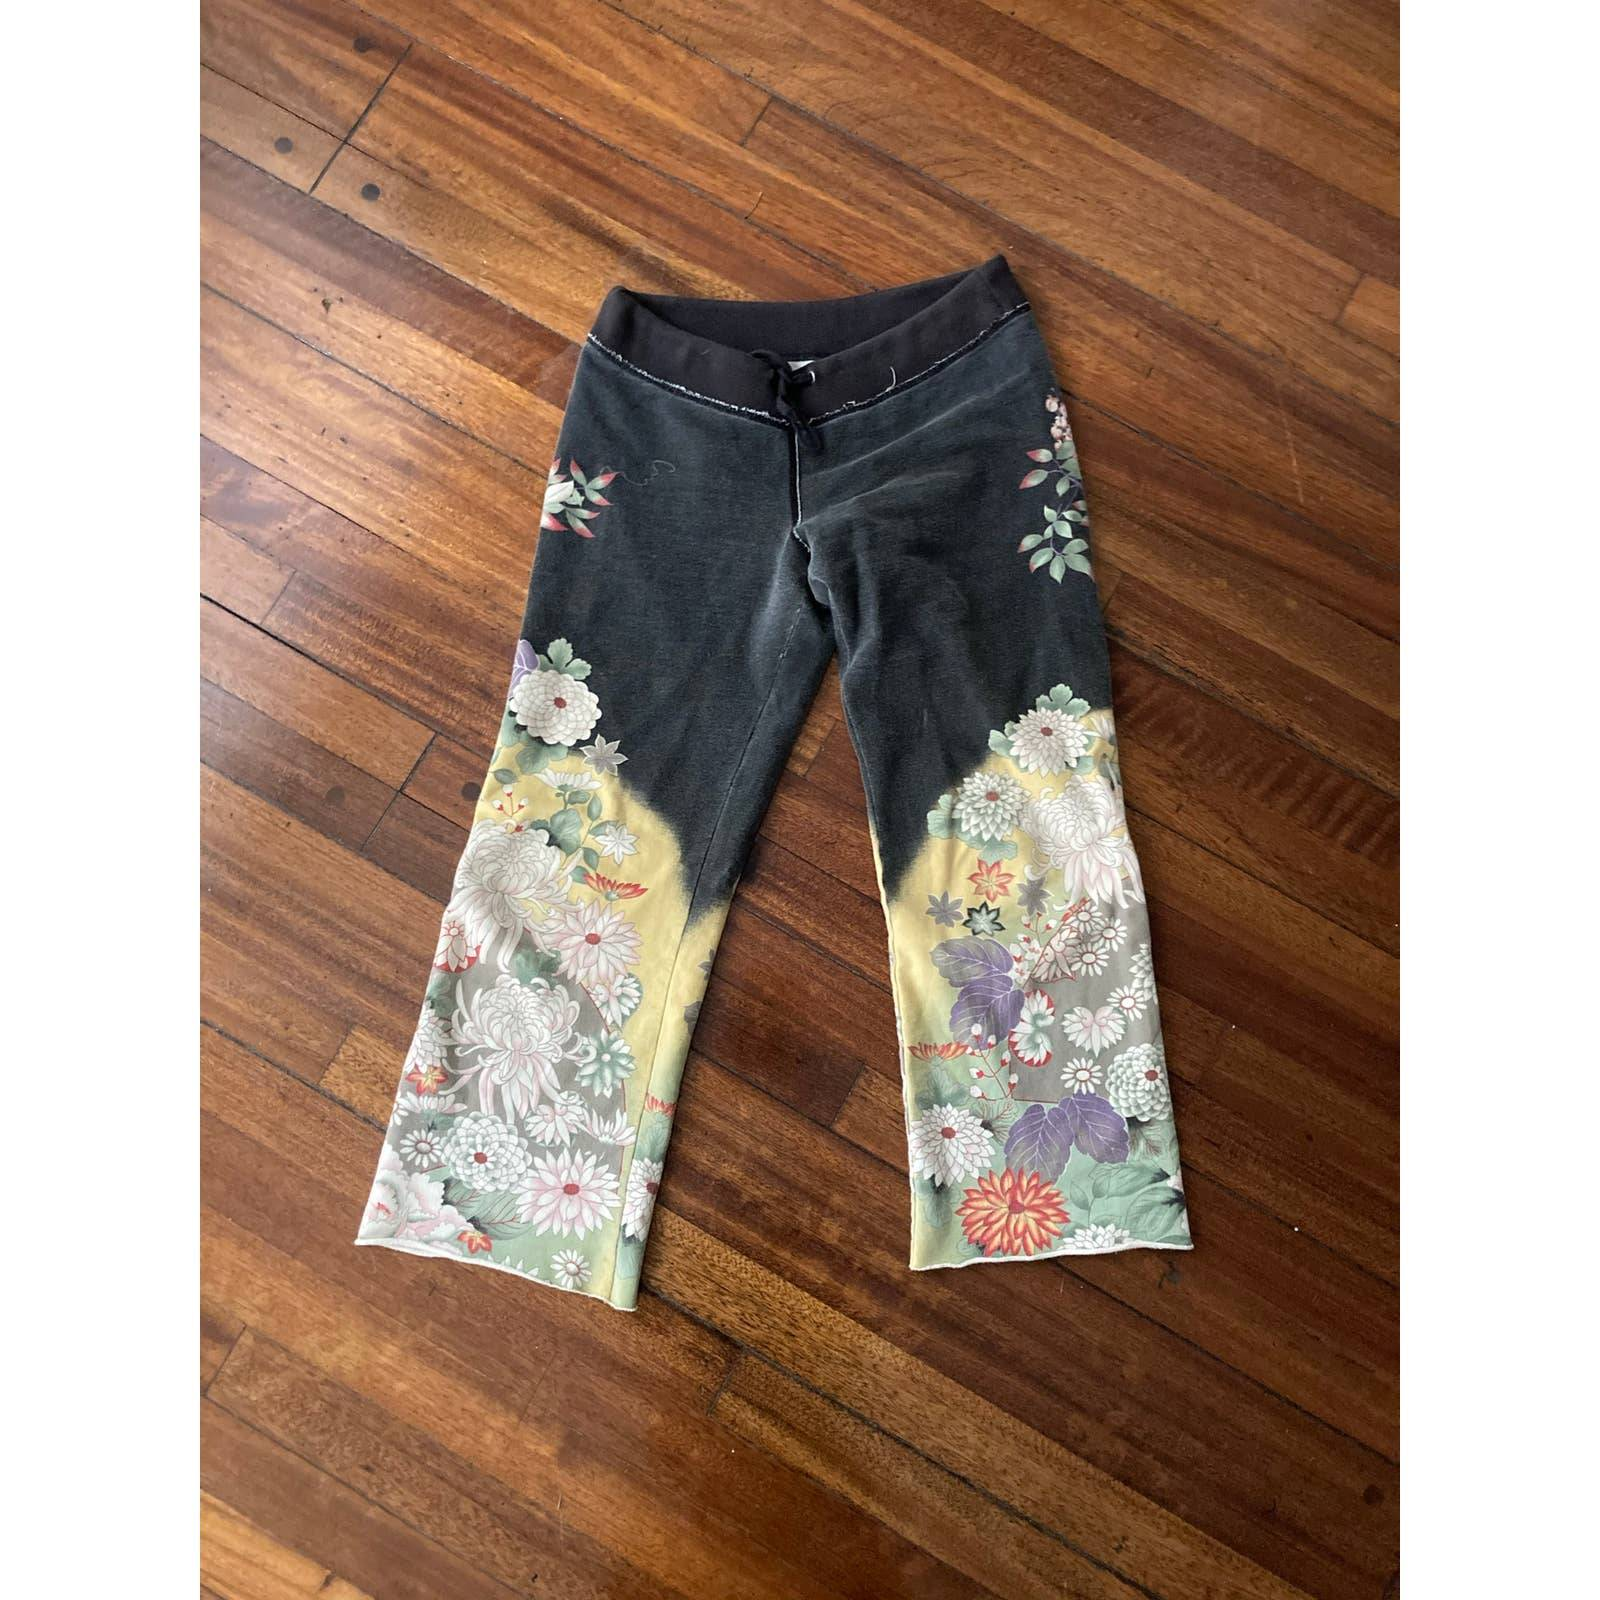 Lucky Brand Asian inspired sweatpants XS